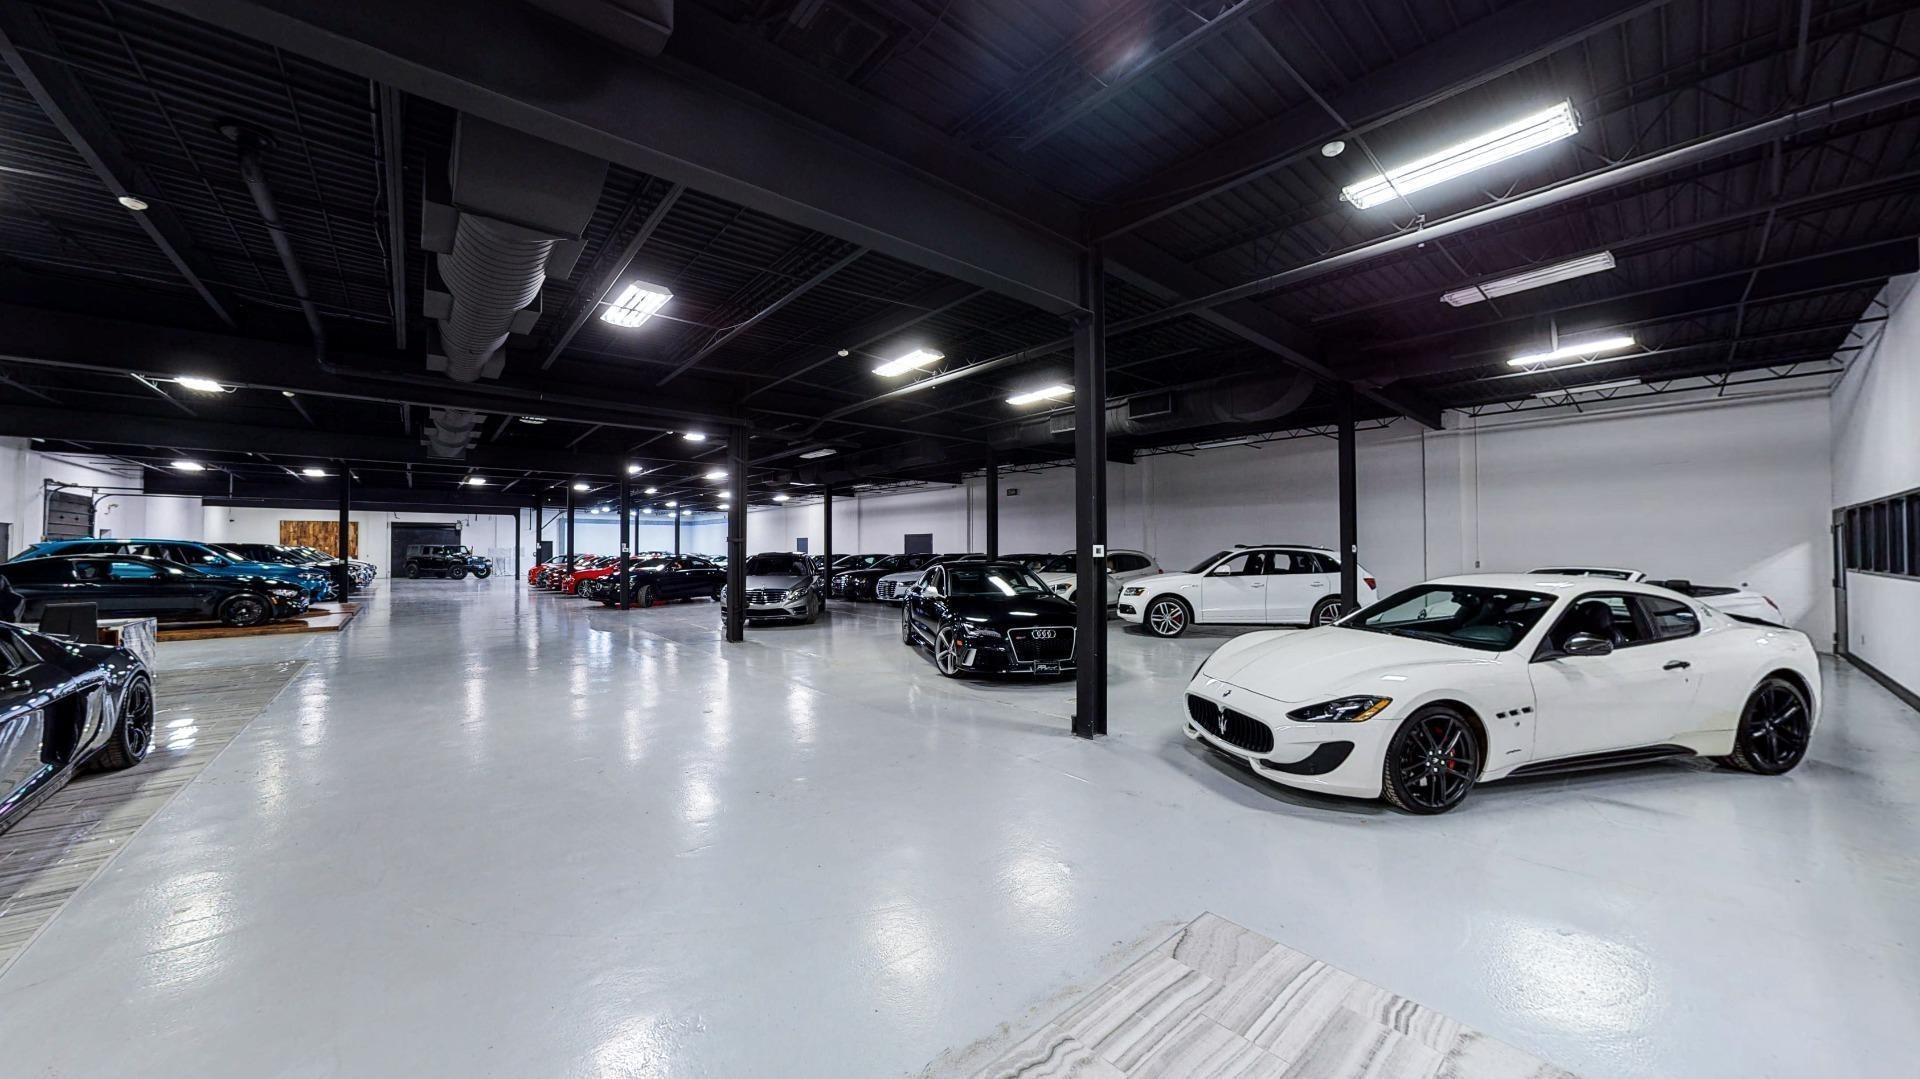 Used 2020 Toyota GR Supra 3.0 Premium for sale $51,495 at Perfect Auto Collection in Akron OH 44310 4